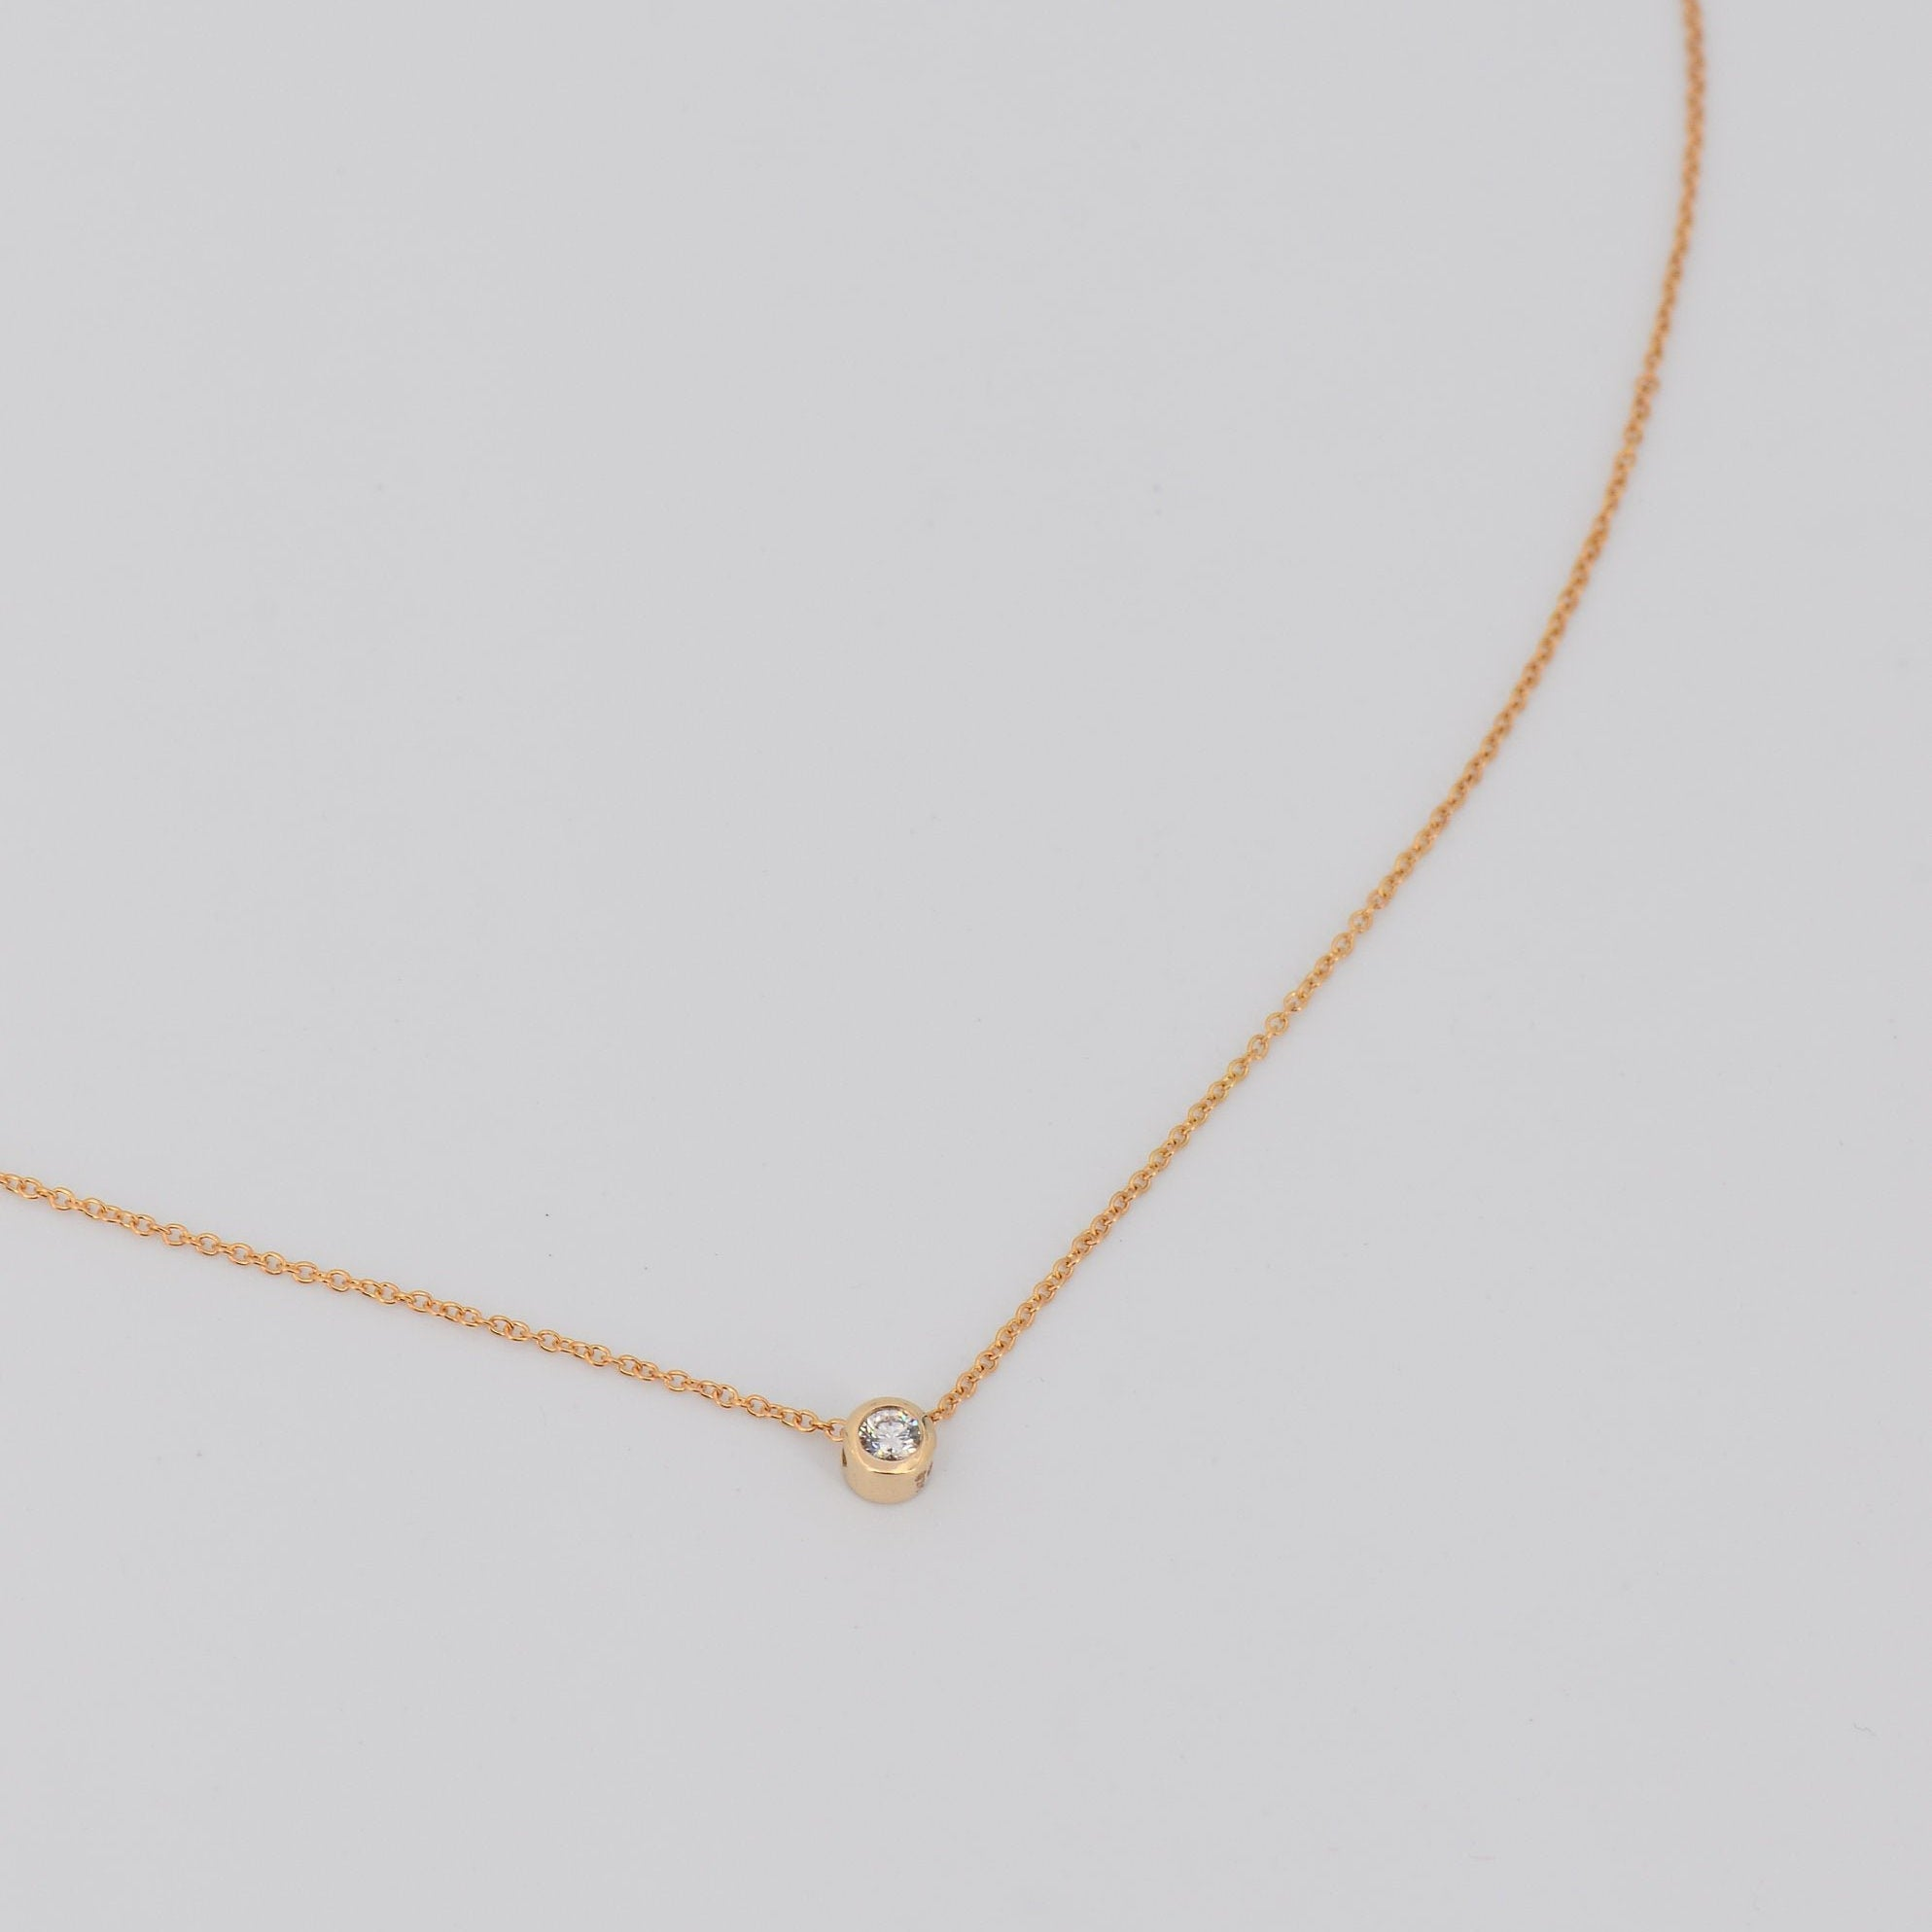 Solitaire Diamond Necklace, Dainty Diamond Pendant